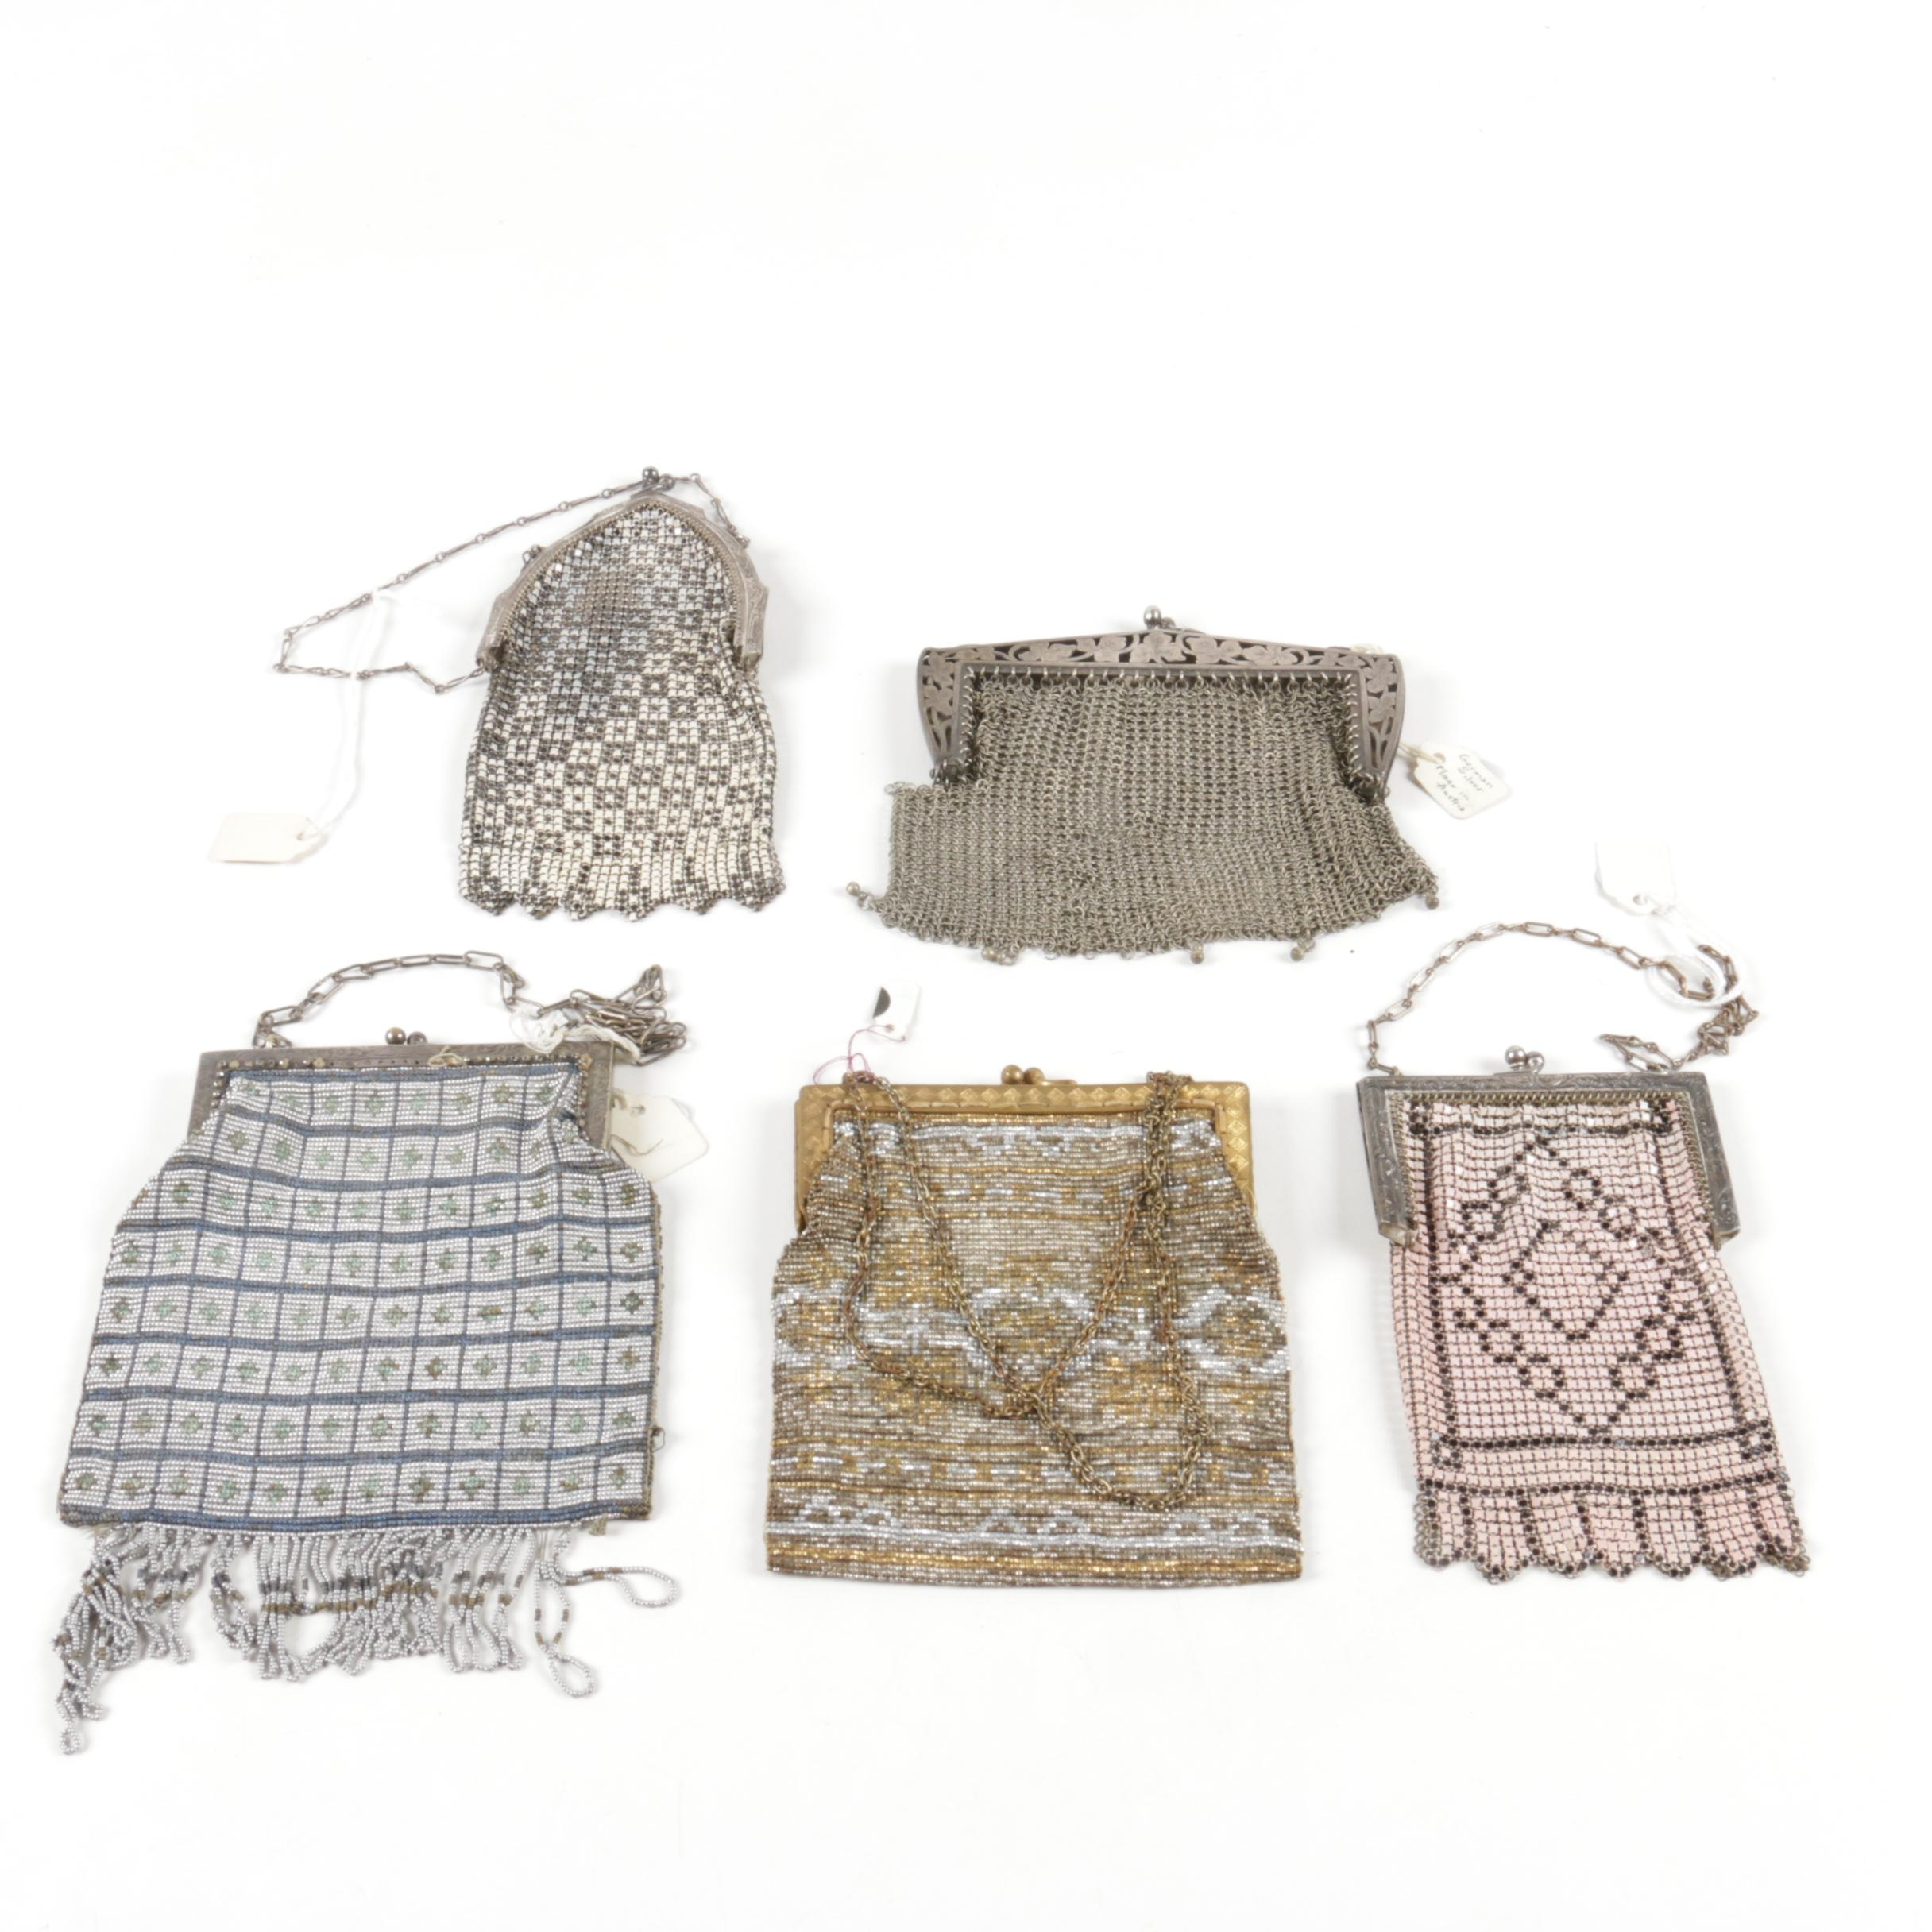 Early 20th Century Style Mesh Purses